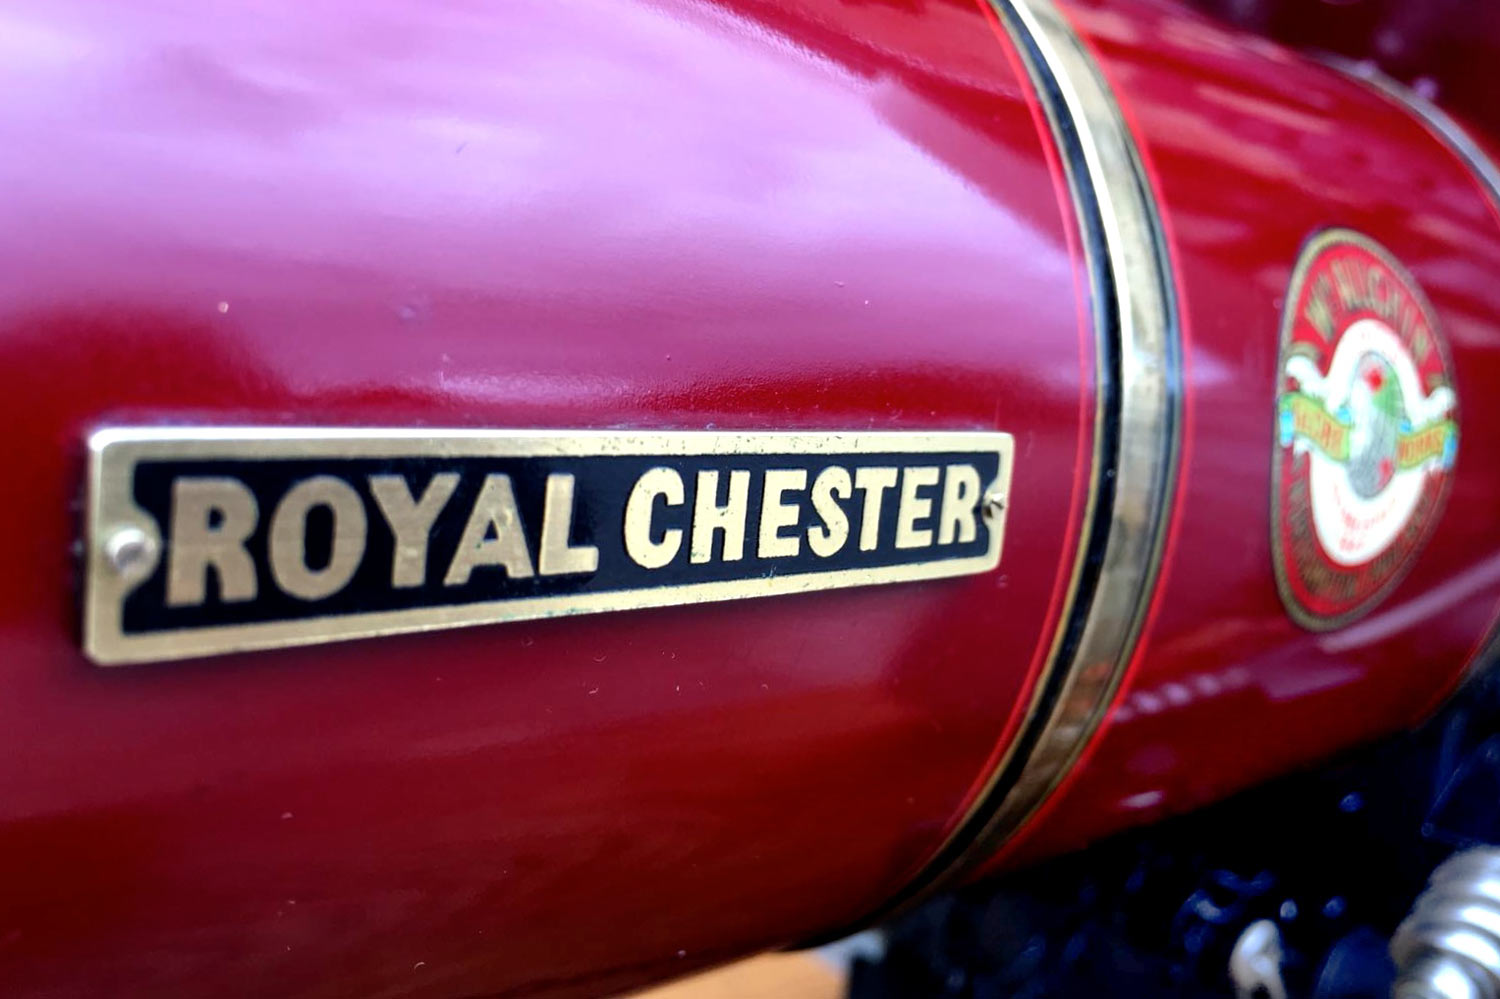 test 1-and-a-half-inch-scale-Royal-Chester-Alchin-traction-engine-live-steam-model-for-sale-9